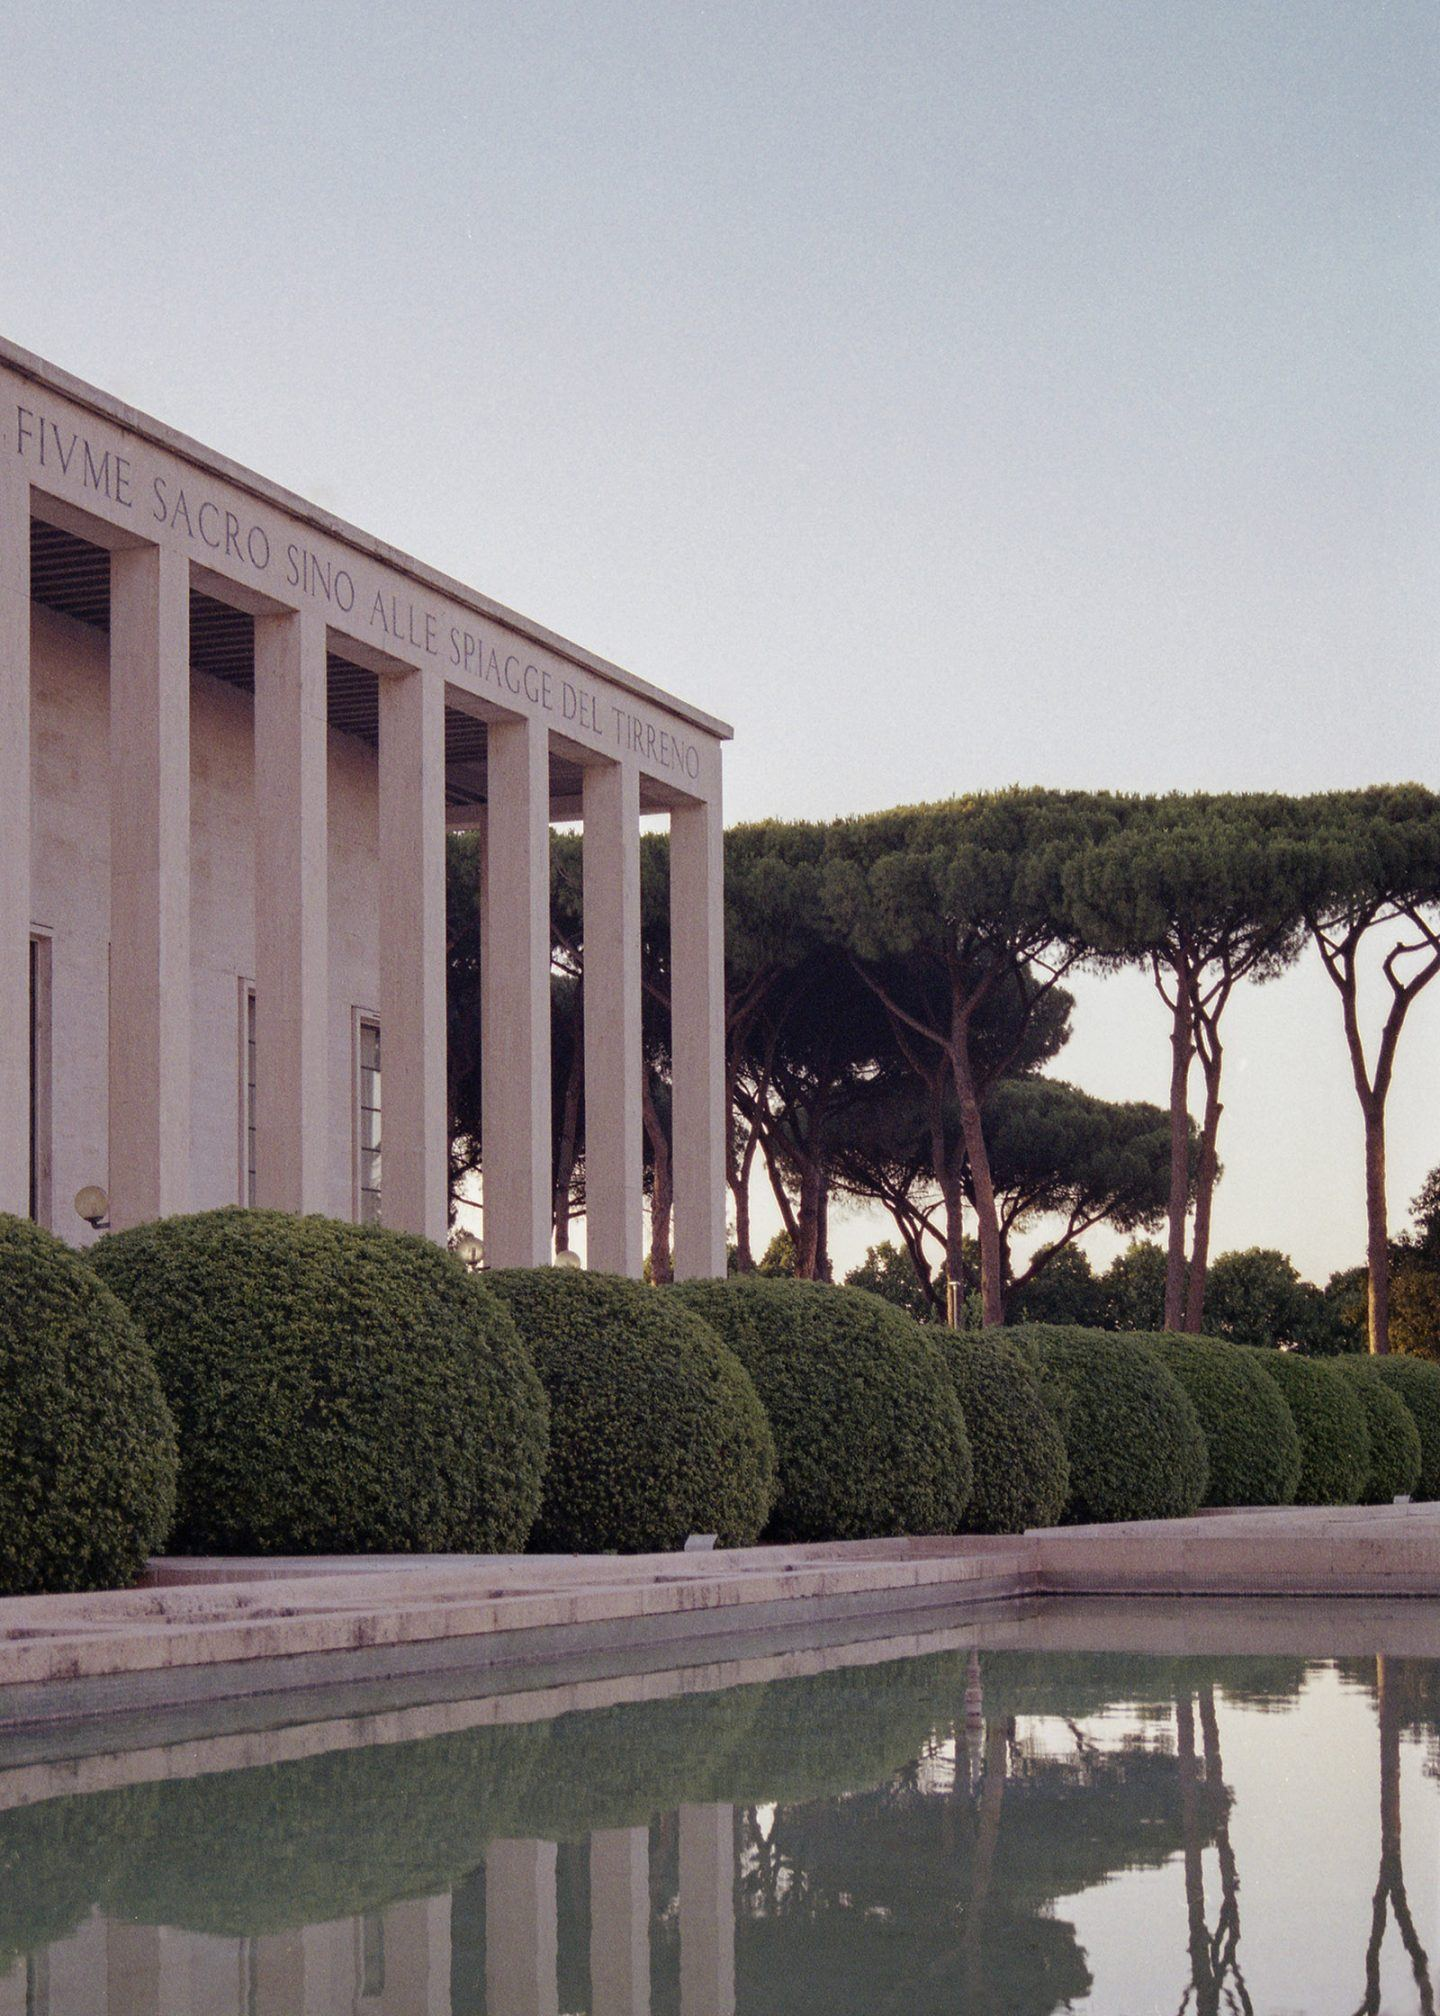 Another Rome_03